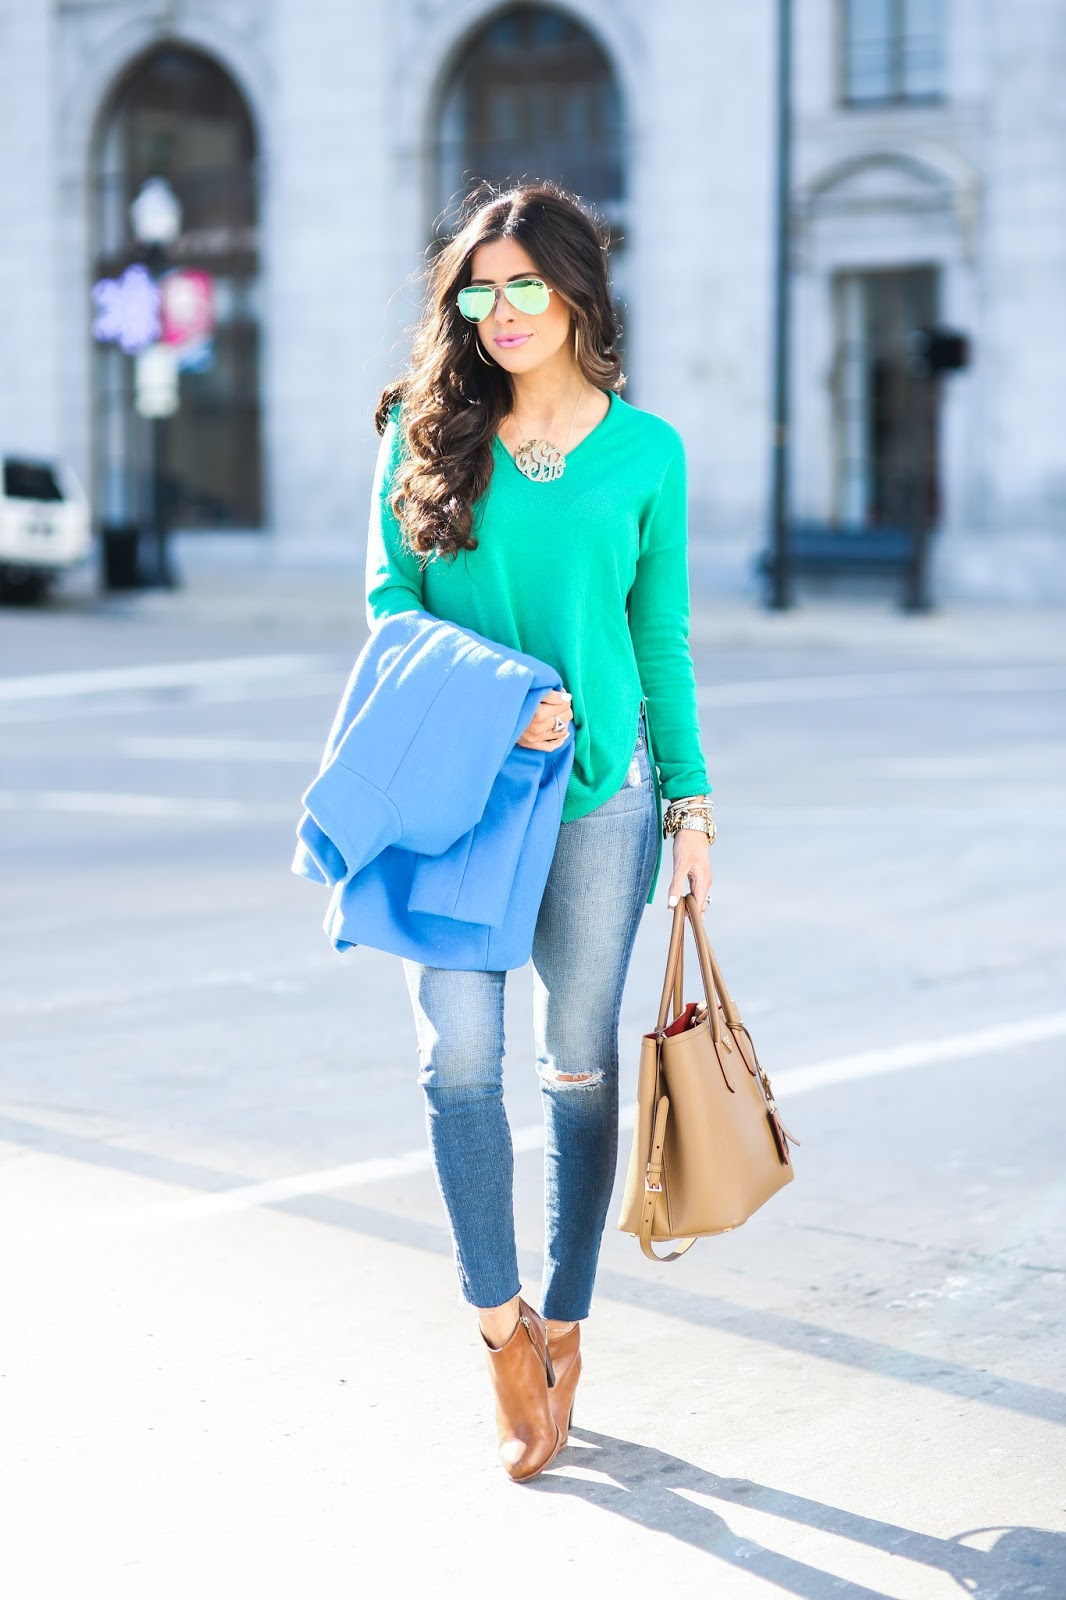 winter fashion pinterest, winter outfit idea pinterest, green trouve sweater nordstrom, AG jeans raw hem skinny jeans, oversized gold monogram, love always monogram, prada tan double tote, green mirrored ray ban aviators, cognac booties nordstrom, tan leather booties, how to style ripped jeans with tan booties, blue crew cocoon coat, brunette hair balayage medium length, brunette hair cut curls, david yurman statement rings, michael kors gold watch, david yurman alex ani bracelet stack, tulsa fashion blogger, downtown tulsa, bright winter outfit idea, emily gemma, the sweetest thing blog